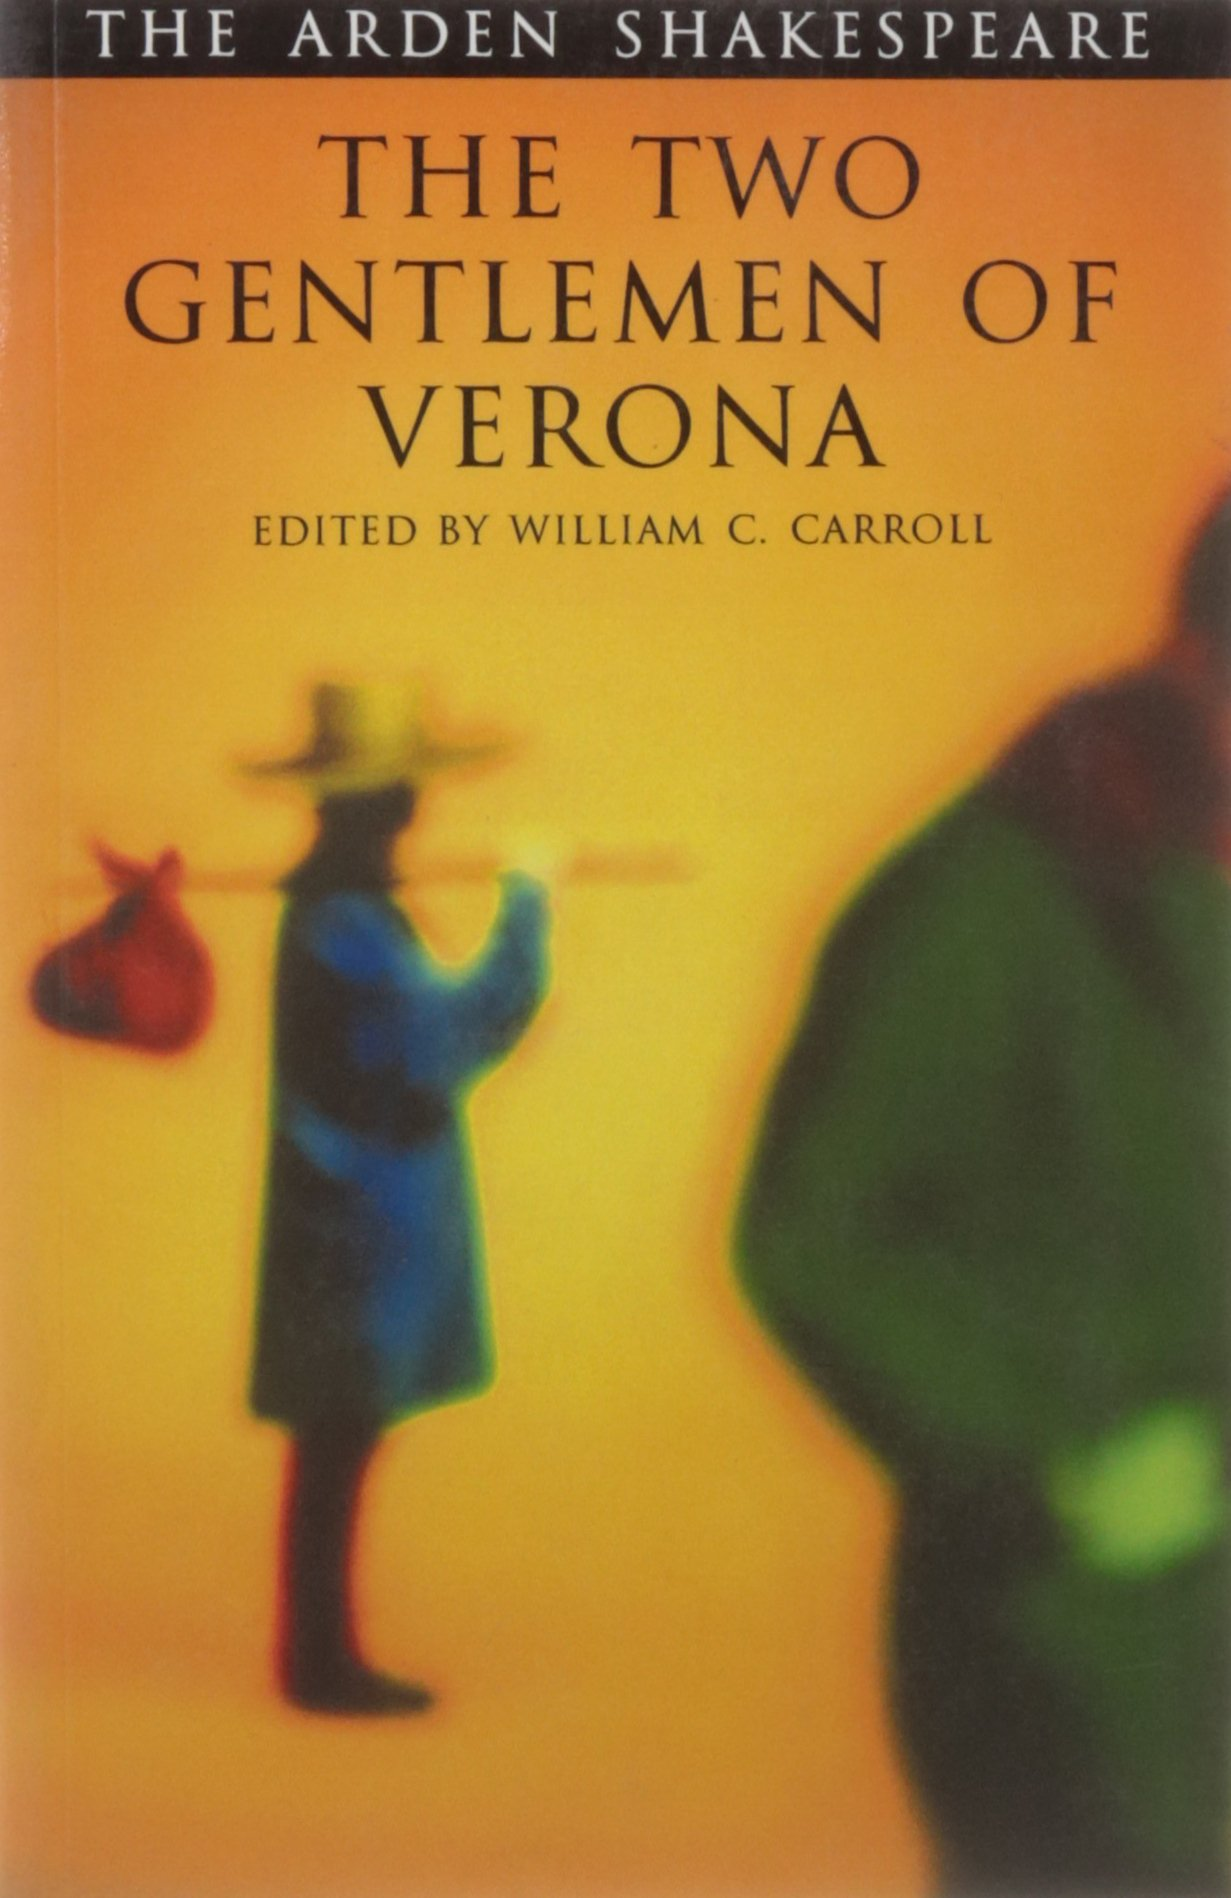 two gentlemen of verona summary friday essay how shakespeare  com the two gentlemen of verona arden shakespeare third com the two gentlemen of verona arden